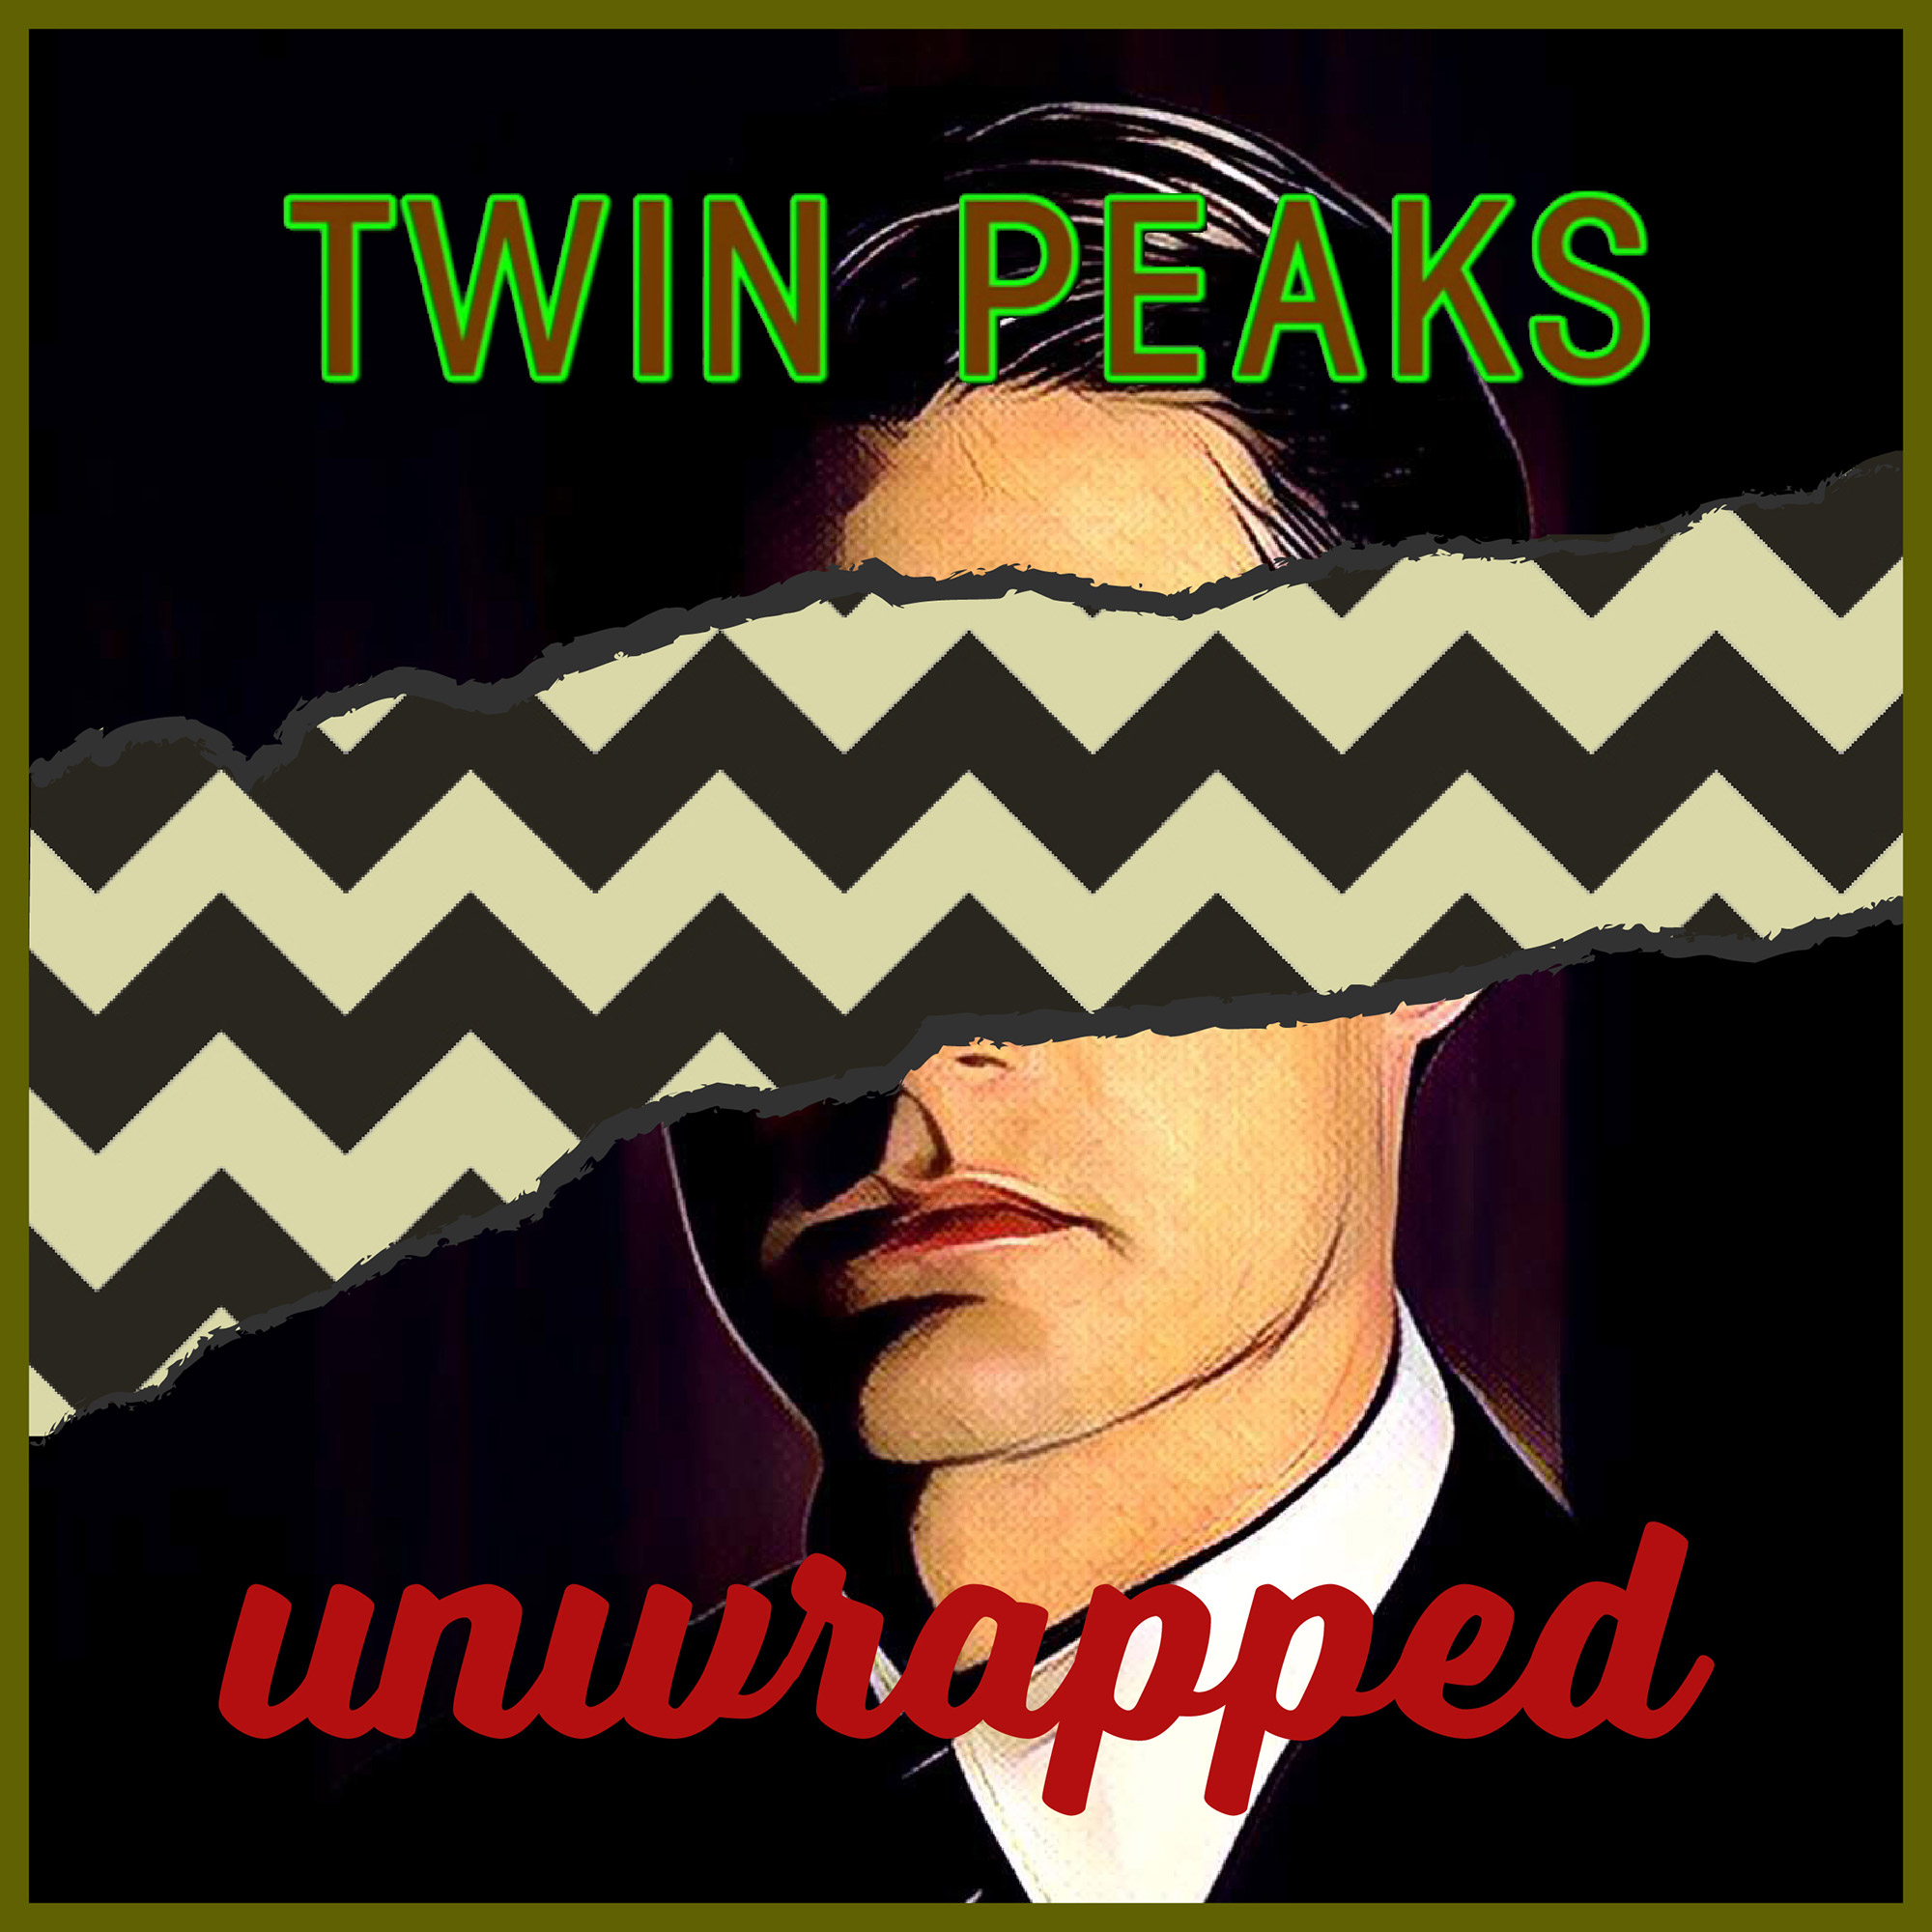 Twin Peaks Unwrapped 129: The Final Dossier with John Thorne and Joel Bocko